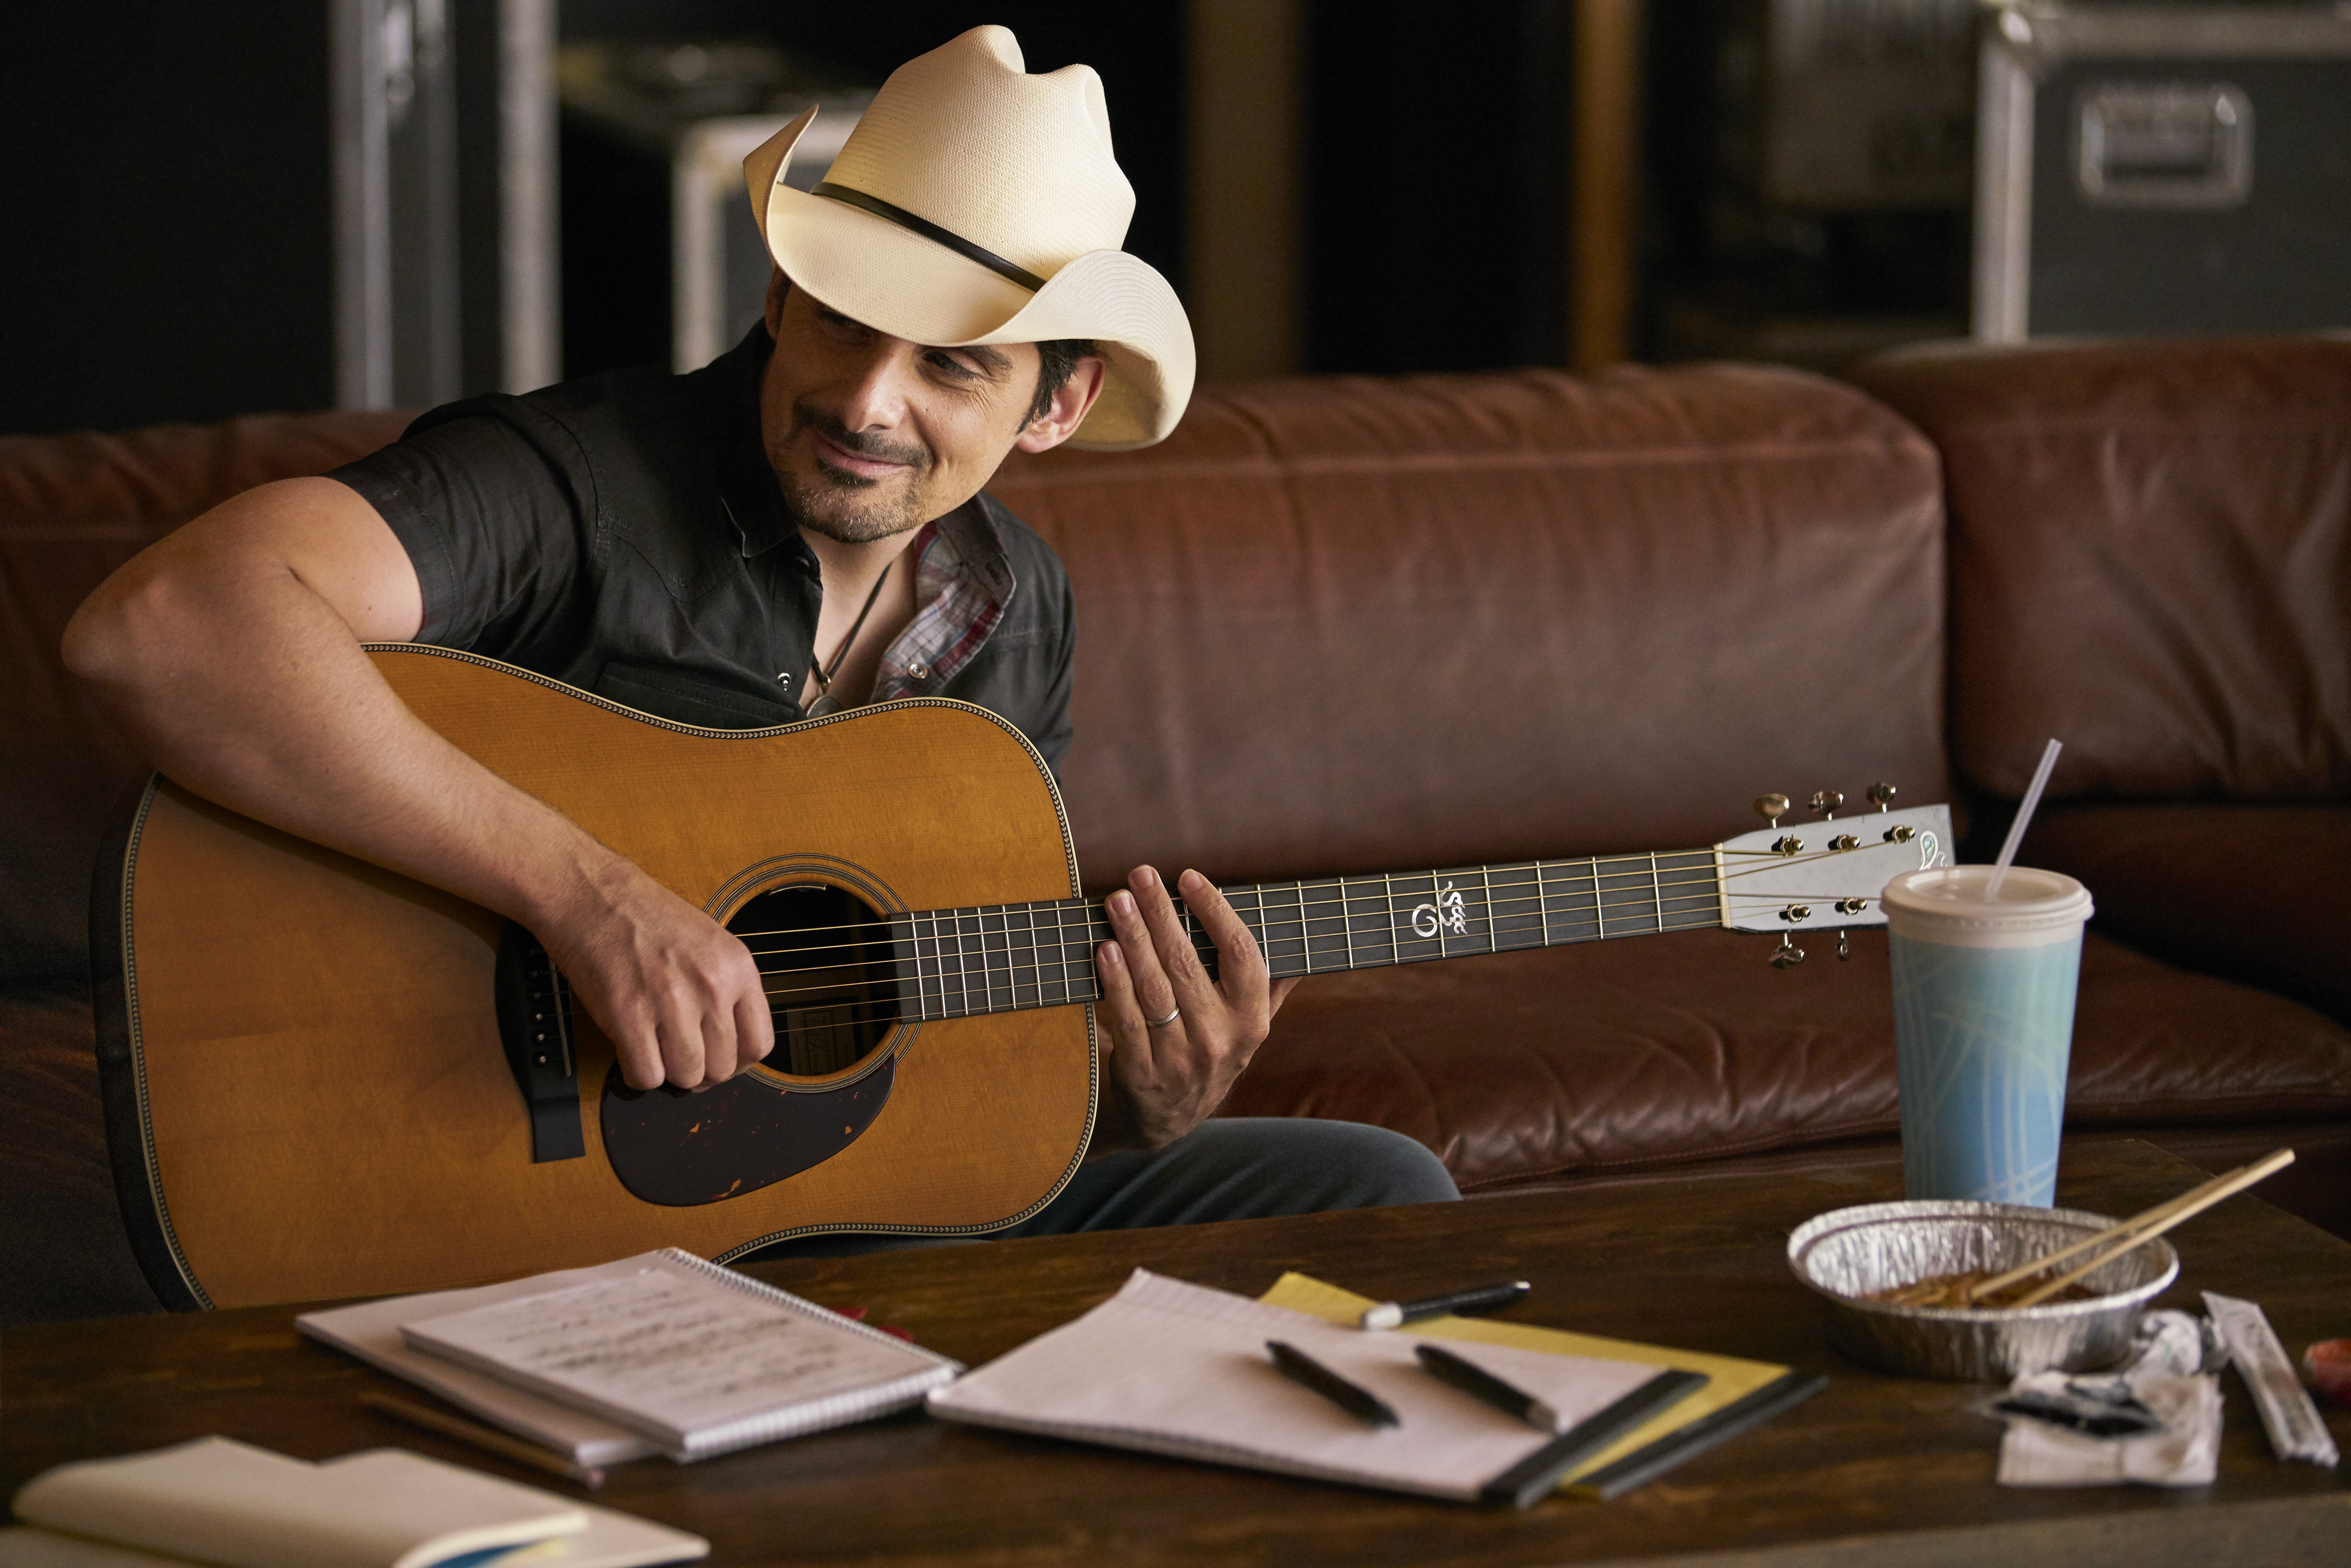 Songs for All Your Sides' Featuring Tori Kelly and Brad Paisley